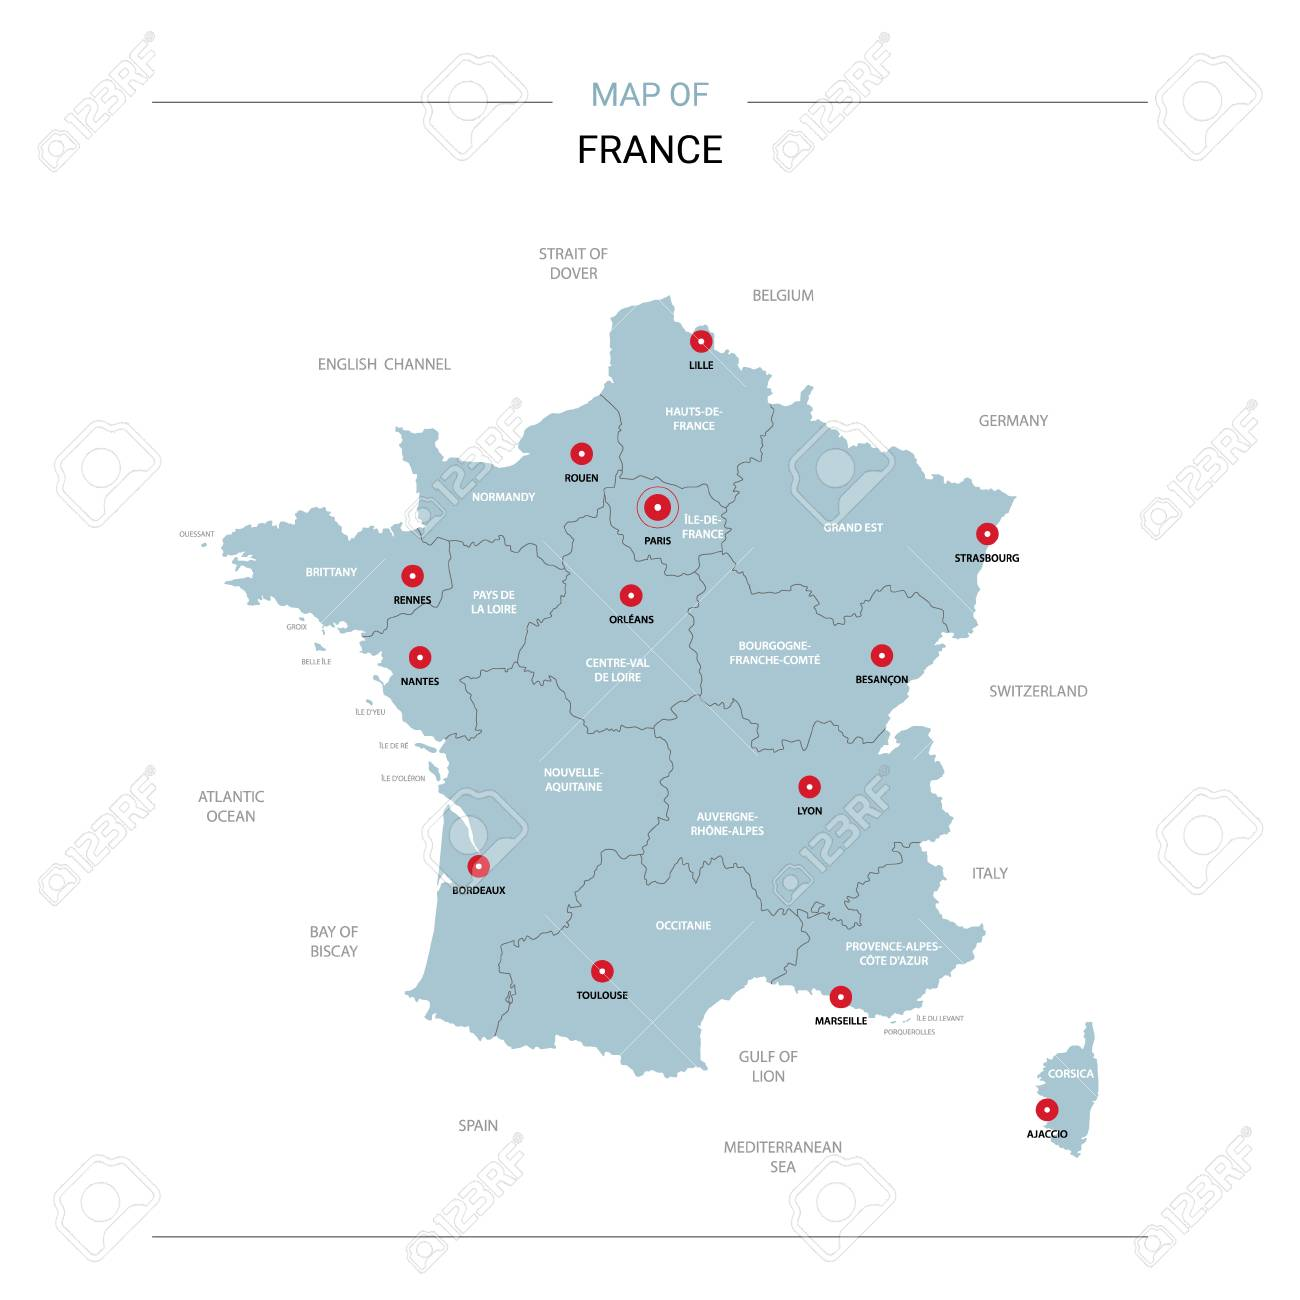 Map Of France Regions With Cities.France Vector Map Editable Template With Regions Cities Red